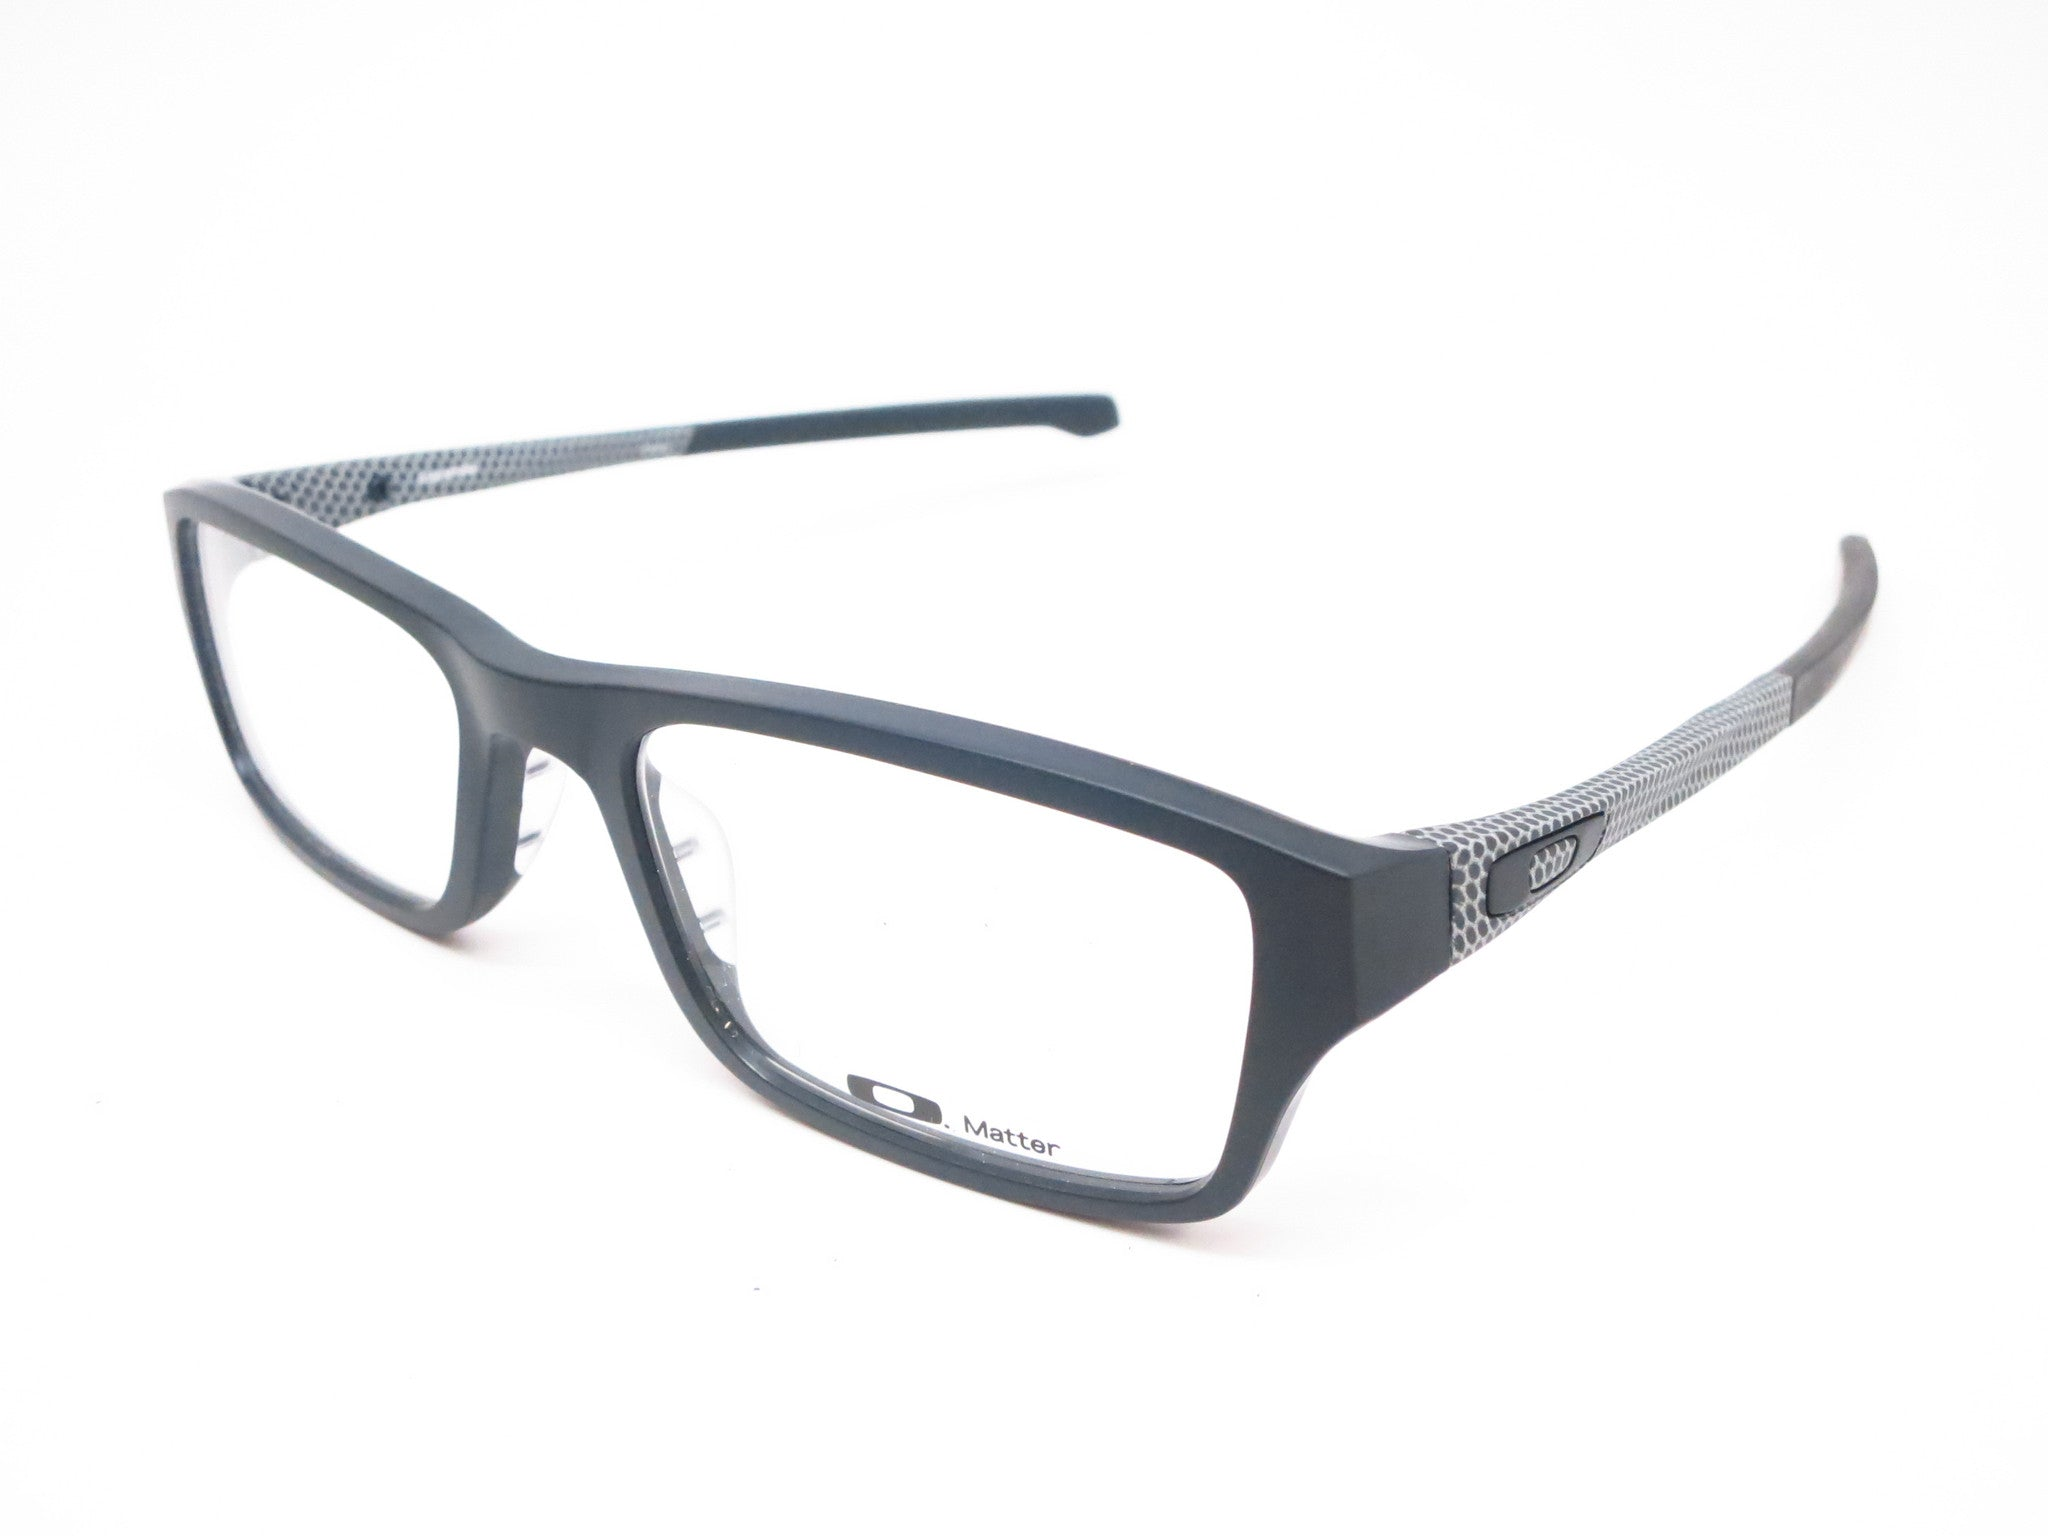 60e4358473c Oakley Chamfer OX8039-1351 Satin Black Eyeglasses - Eye Heart Shades -  Oakley - Eyeglasses